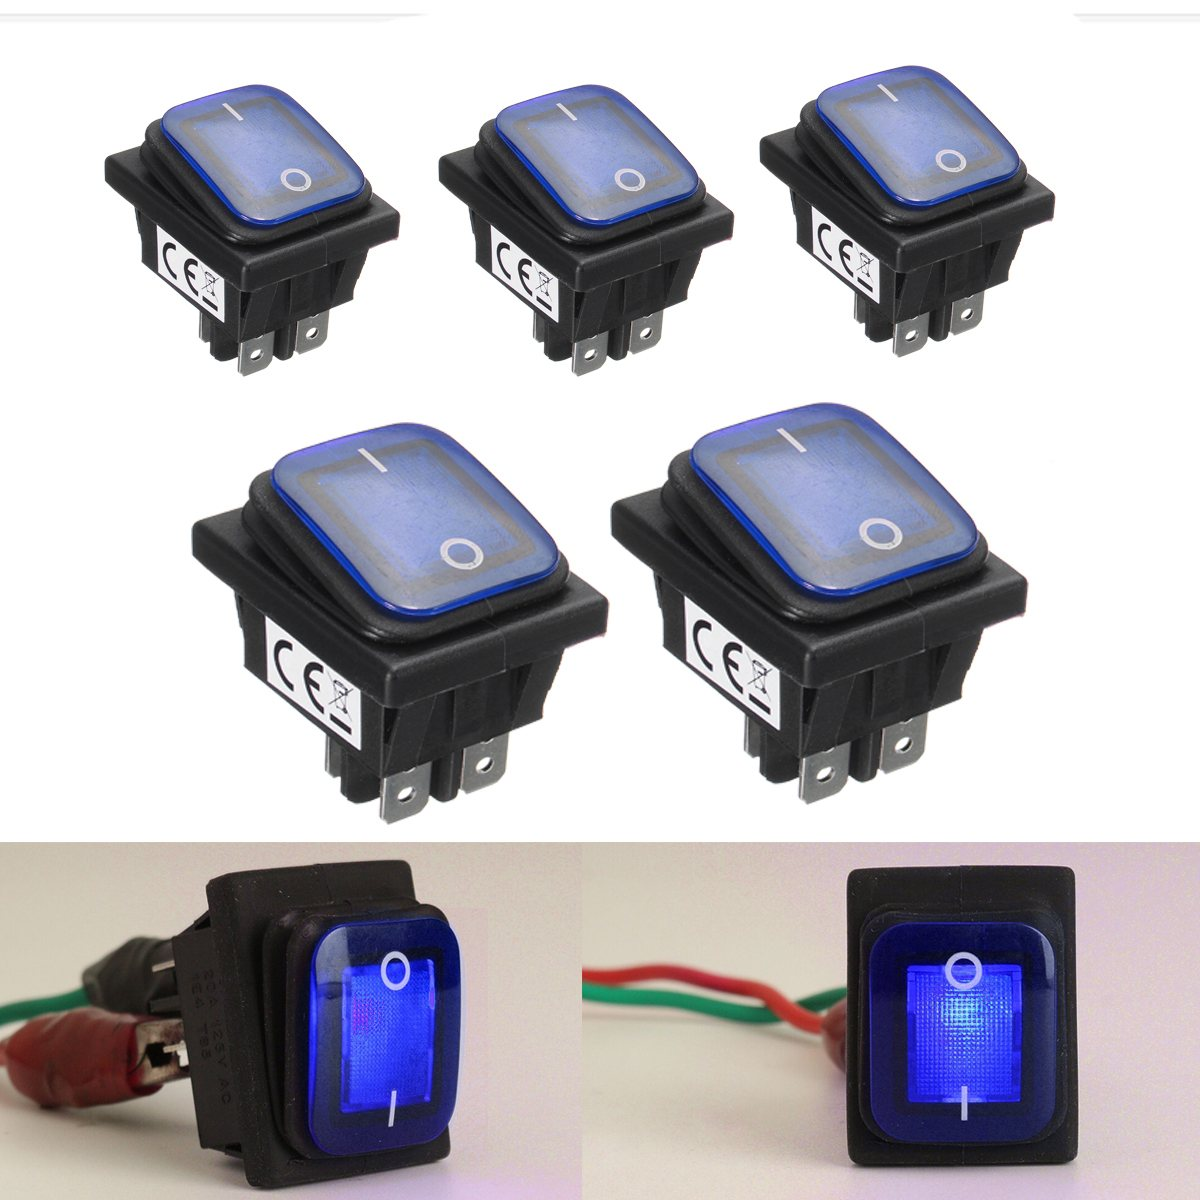 Boat Parts & Accessories Nice Rocker Toggle Switch On-off-on 4 Pins 12v Dc Car Boat Automobiles Waterproof Led Latching Switches Wide Varieties